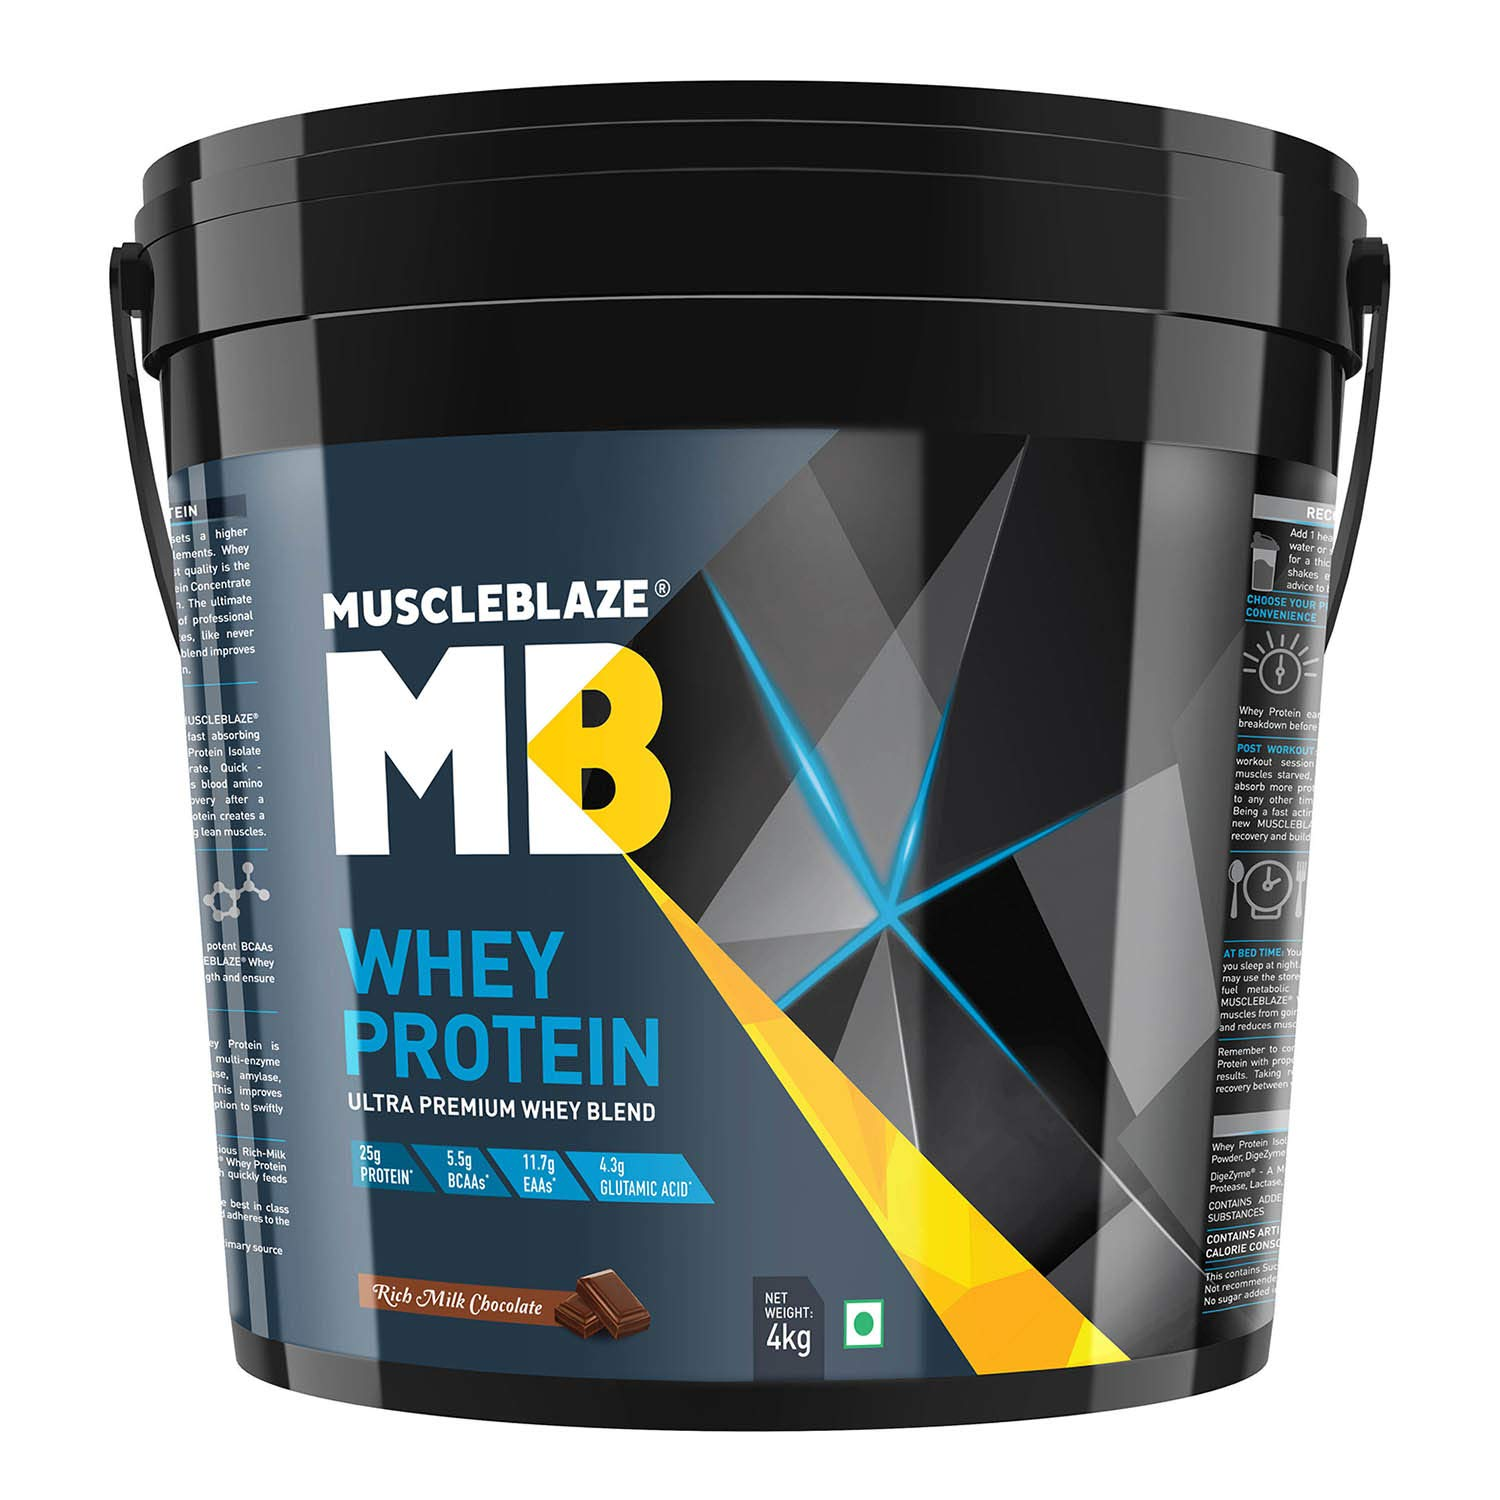 Muscleblaze 100% Whey Protein Supplement Powder